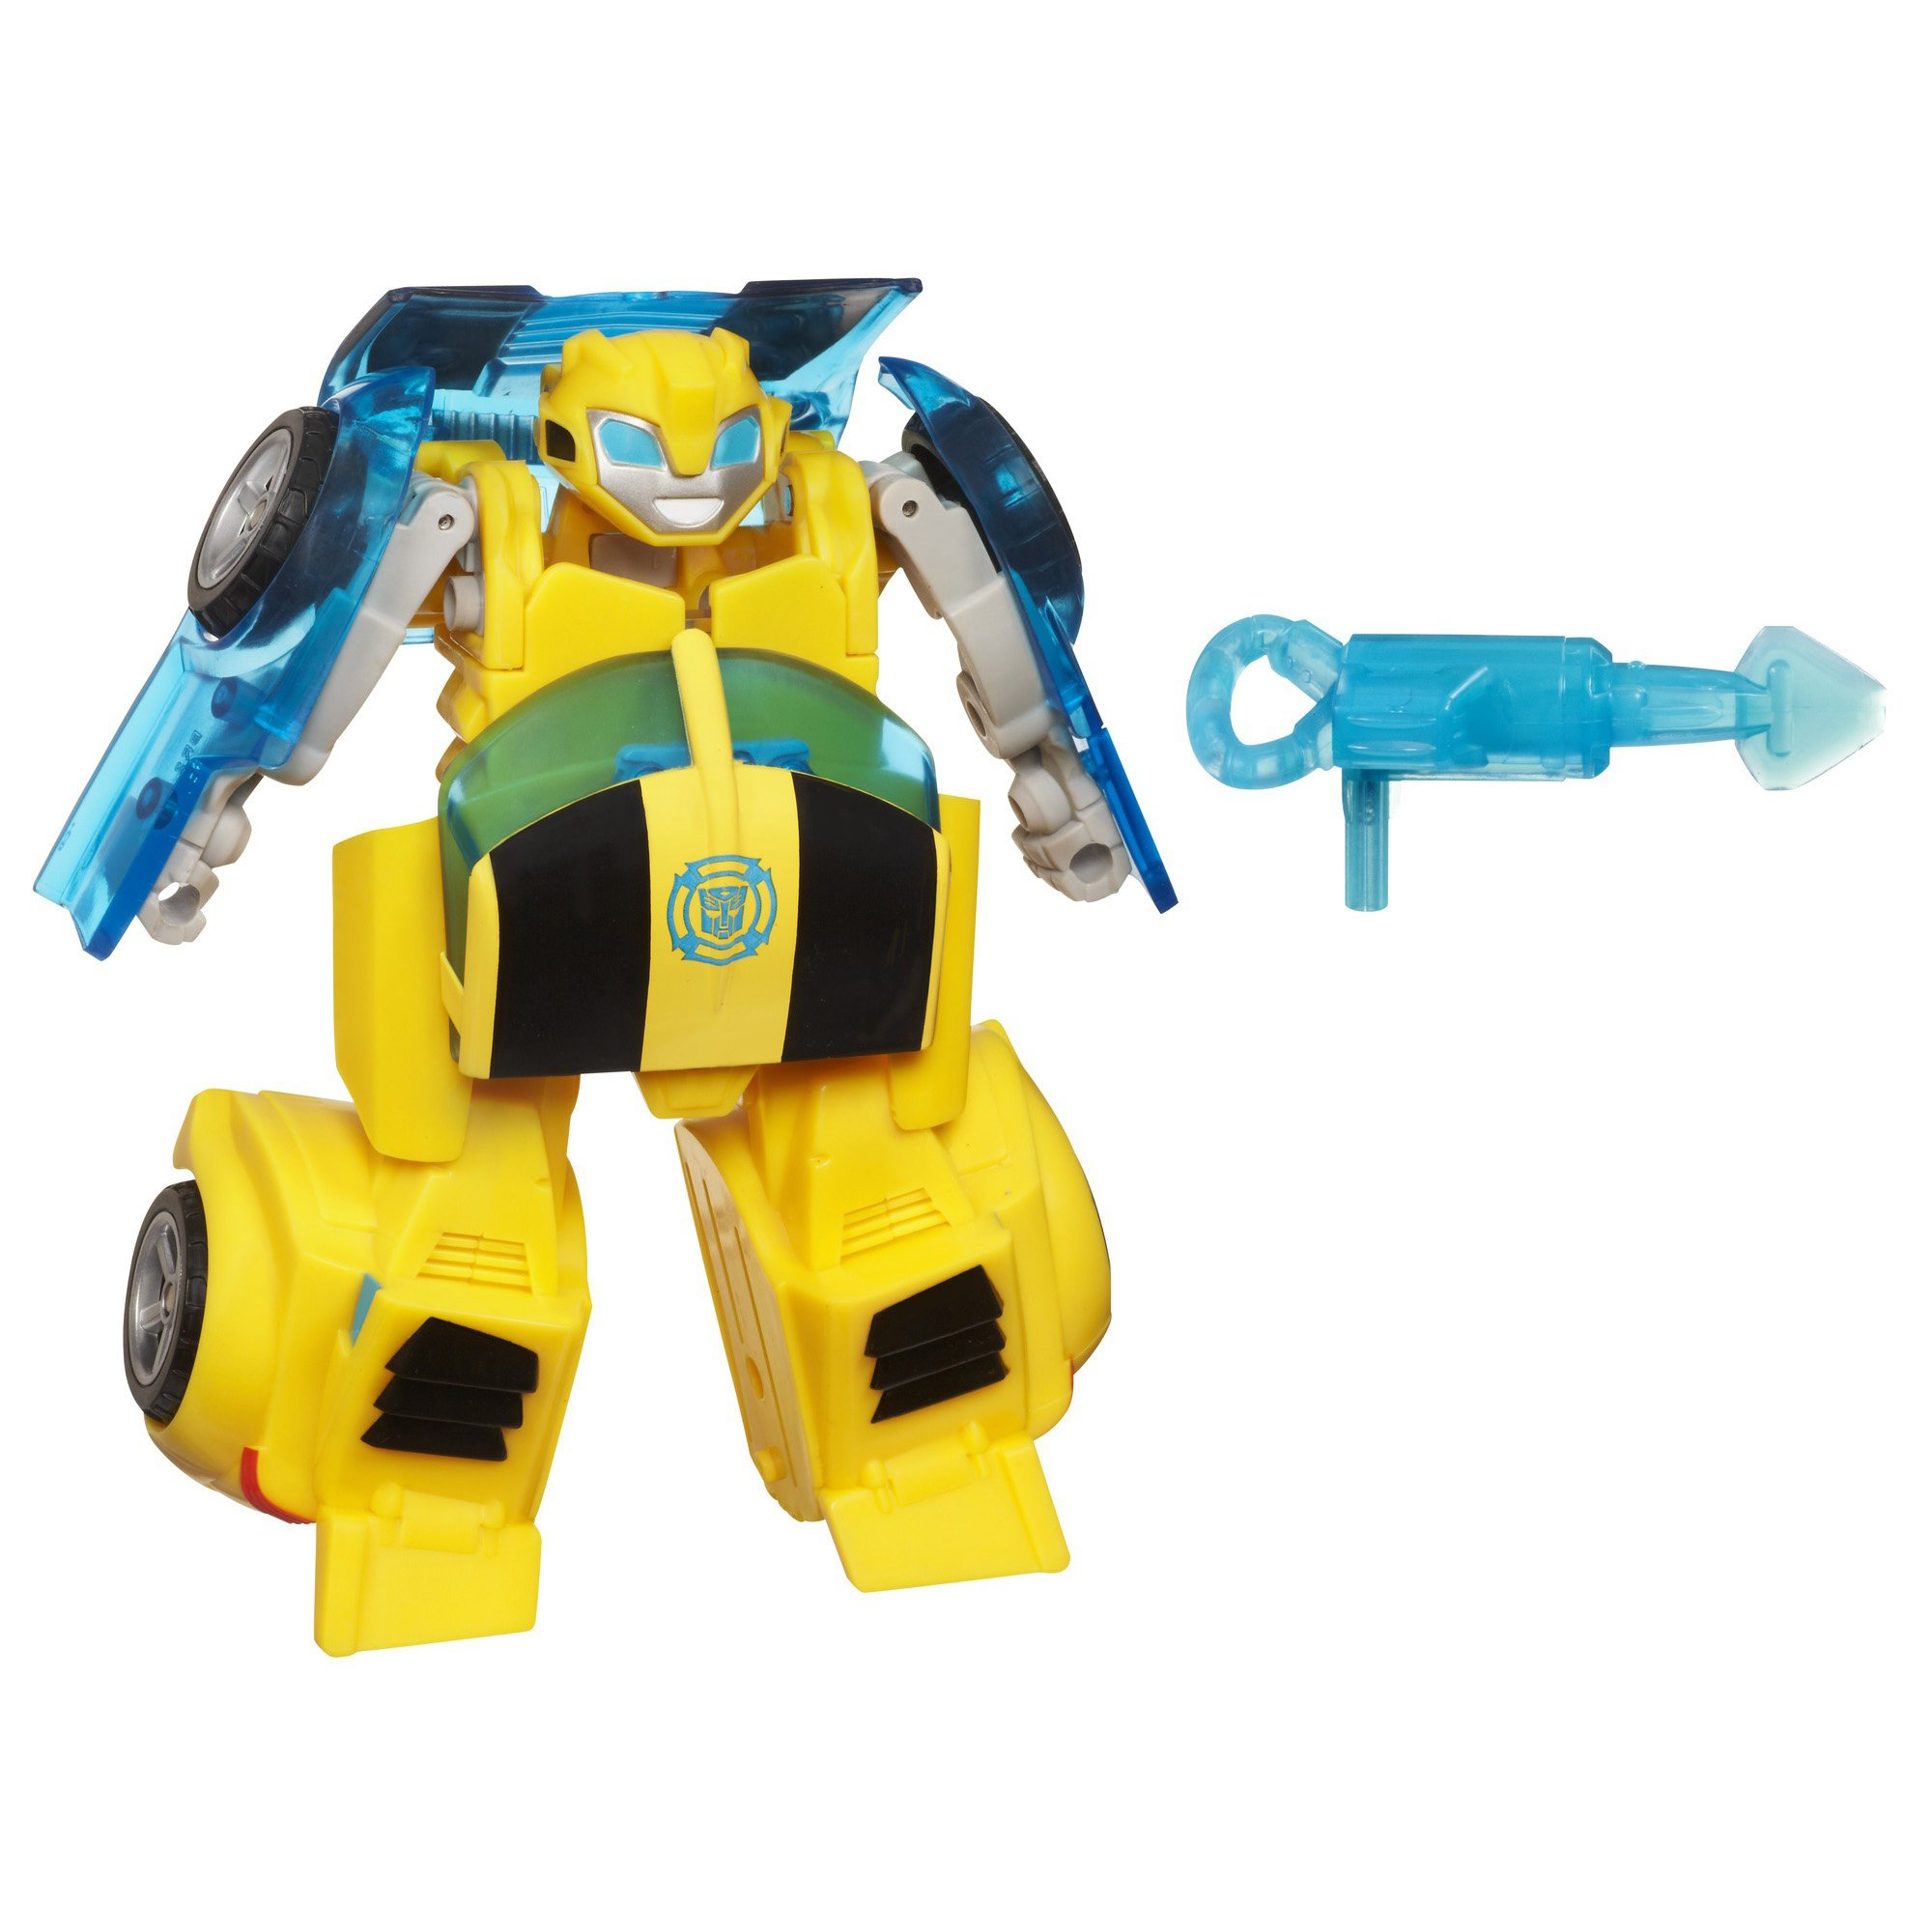 Transformers Playskool Heroes Rescue Bots Energize Bumblebee Figure (Amazon Exclusive) by Transformers